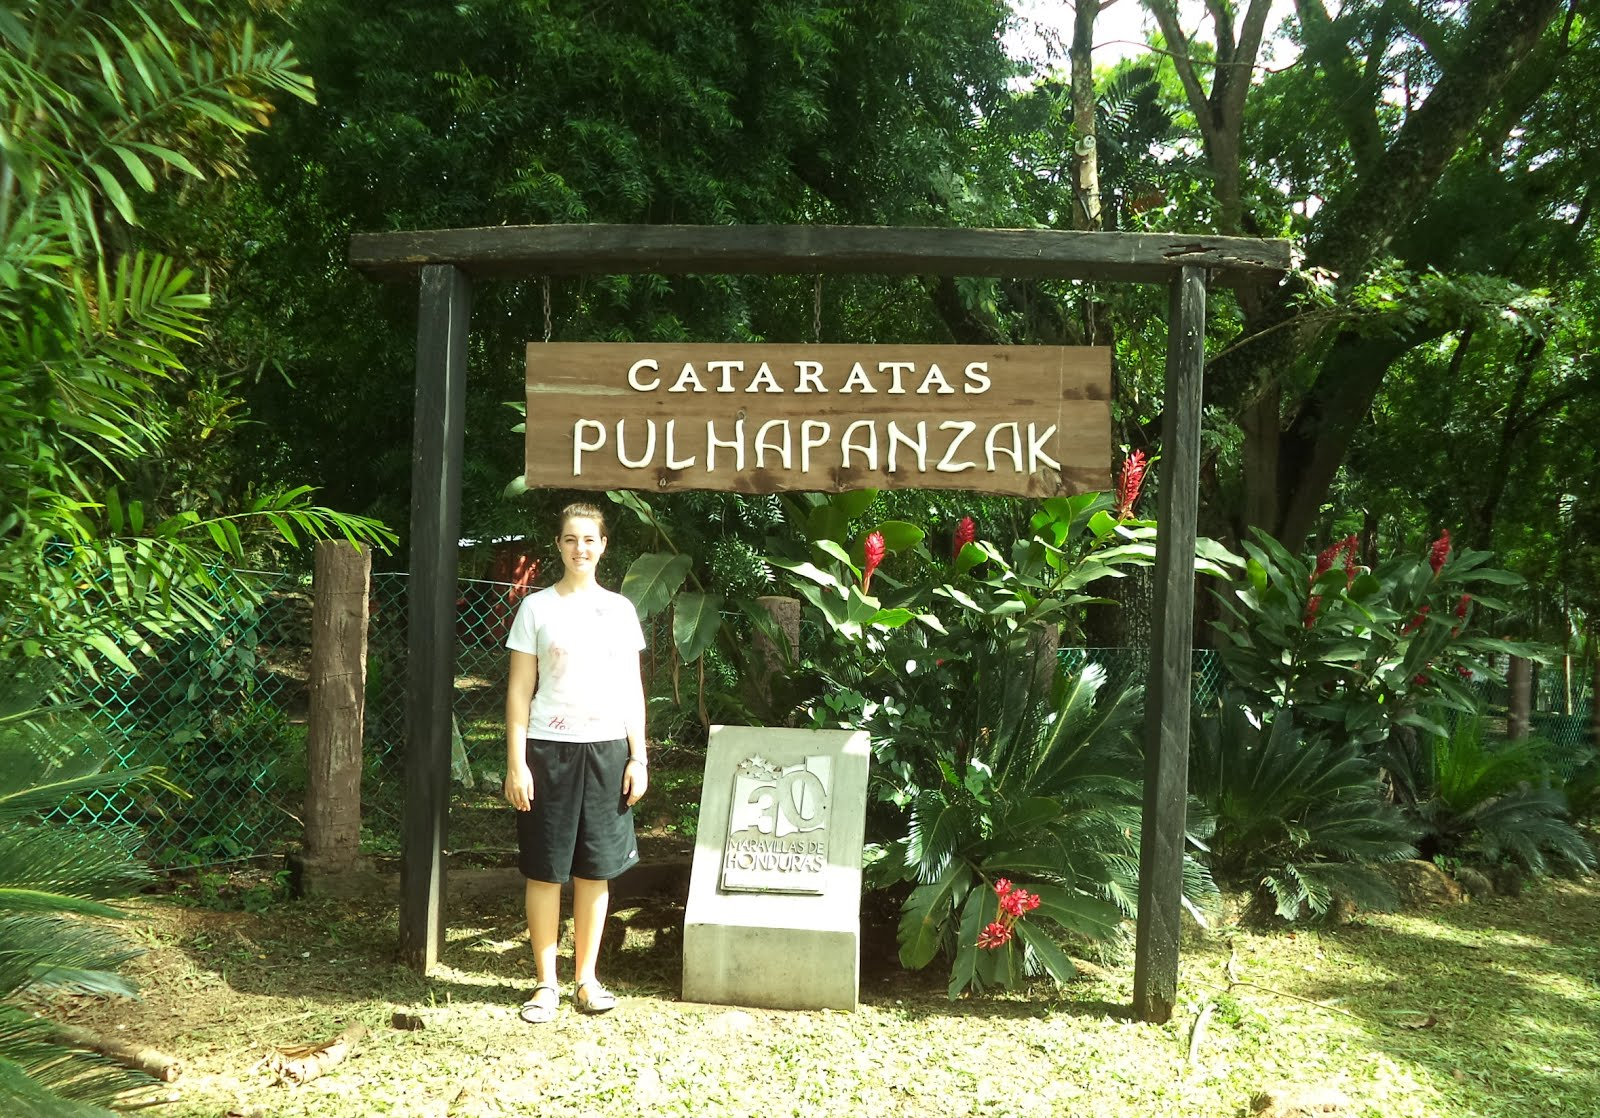 Pulhapanzak on Pday!